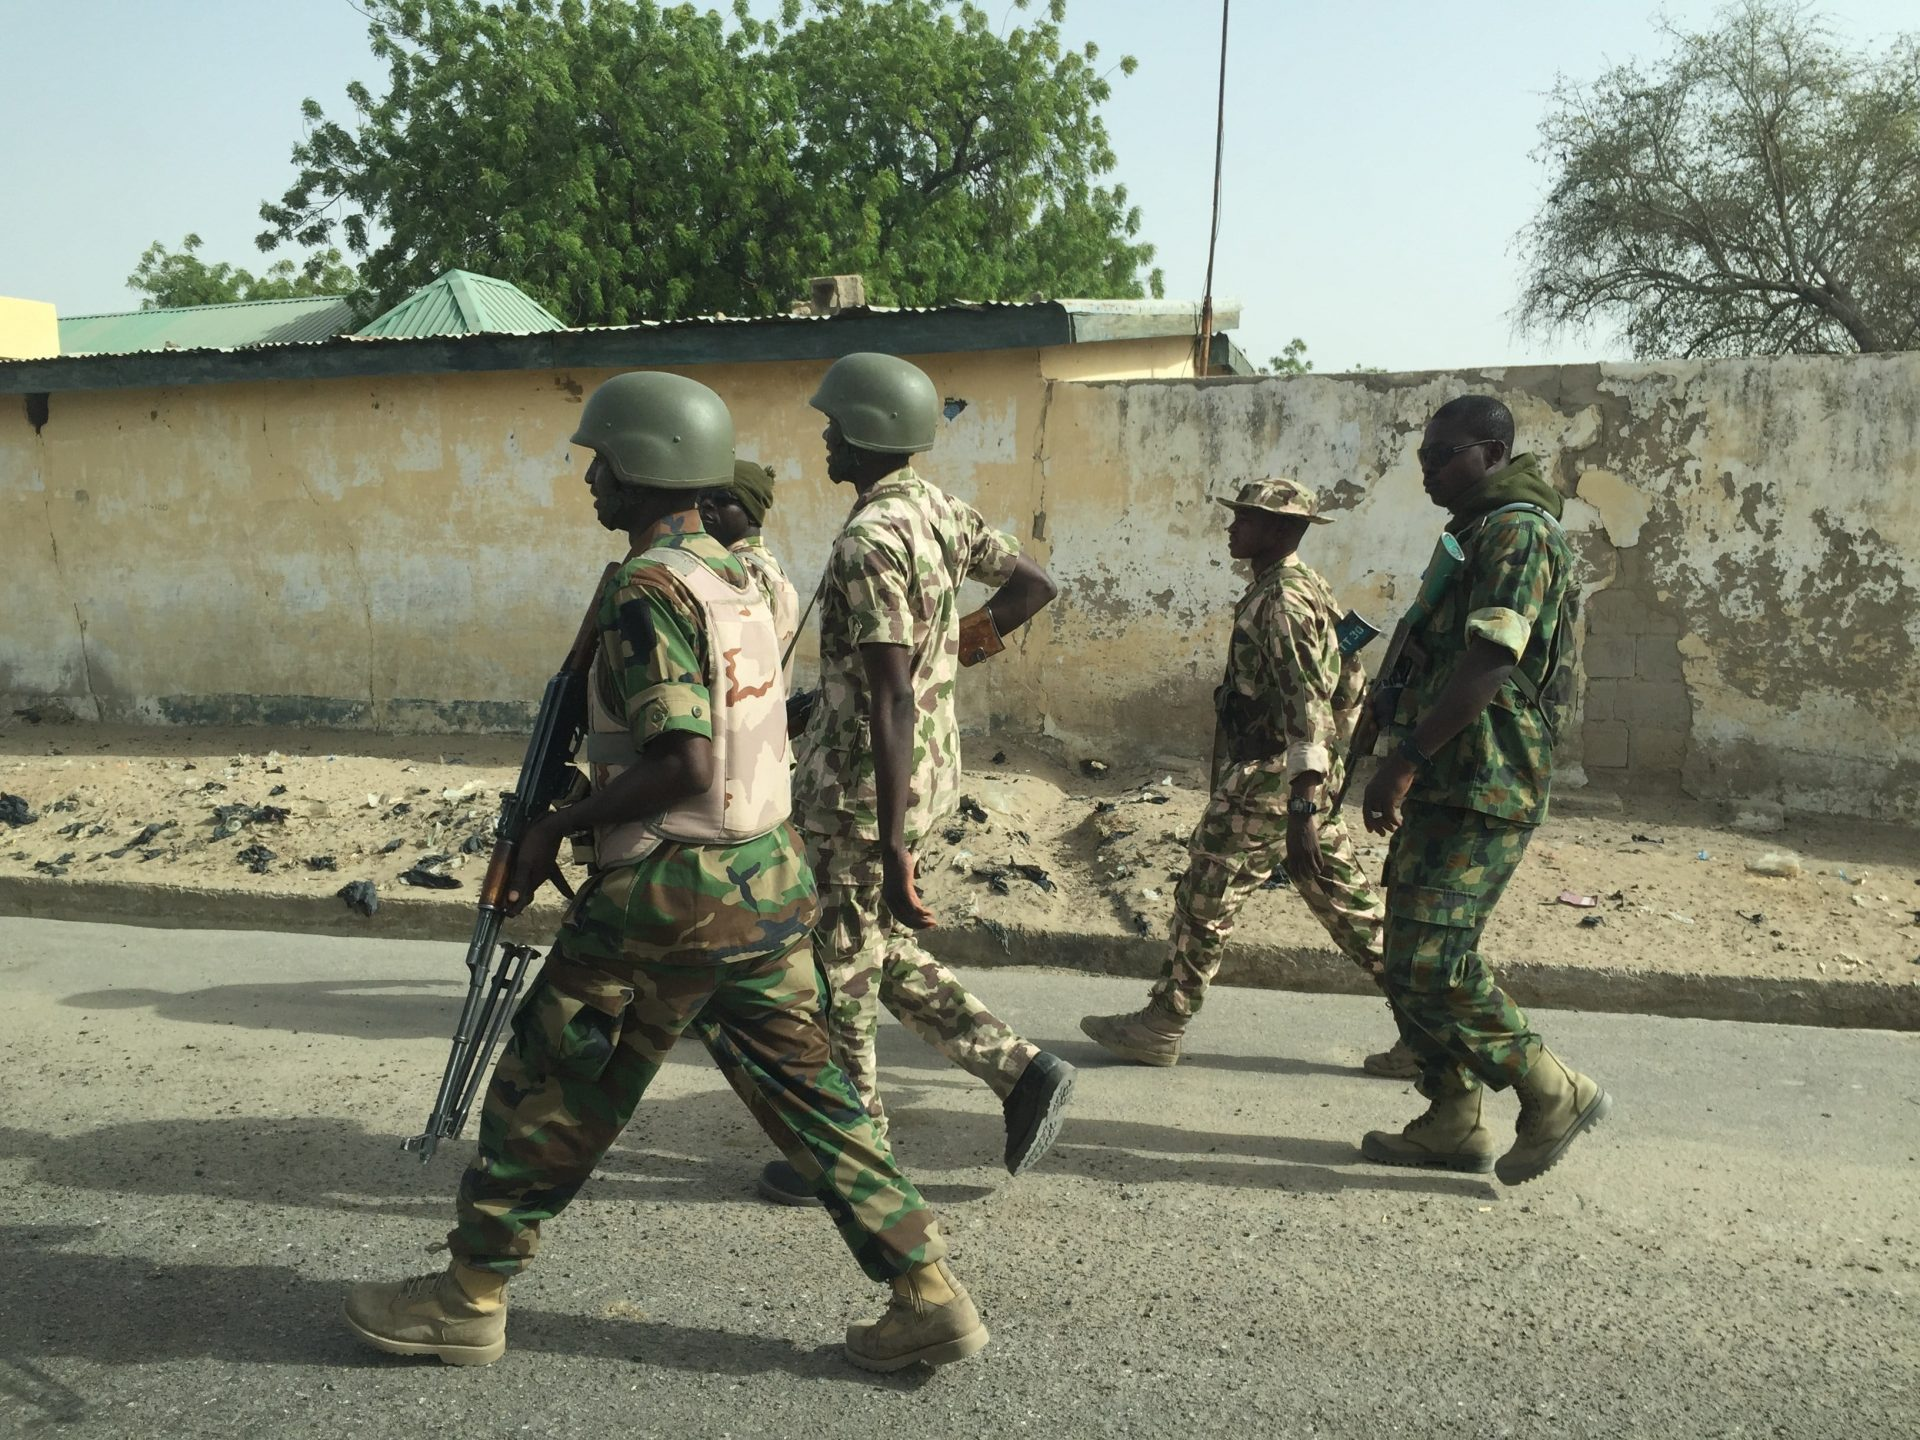 Troops rescue two kidnap victims in Kaduna, 11 other hostages escape from bandit camps